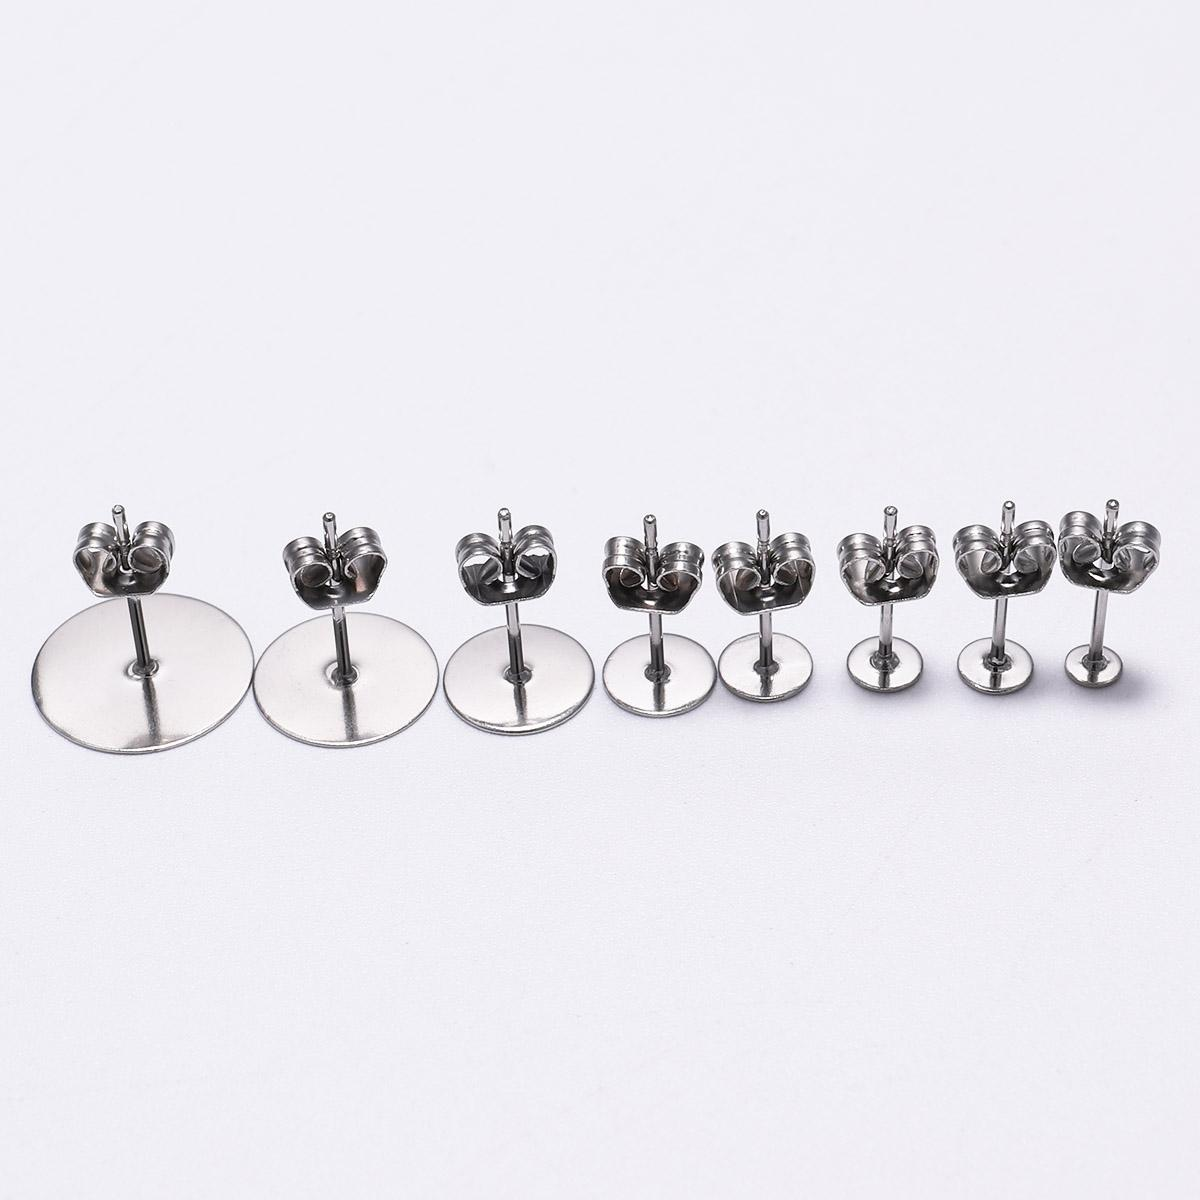 100pcs/lot 3 4 6 8 12mm Stainless <font><b>Earring</b></font> Pins With <font><b>Earring</b></font> For